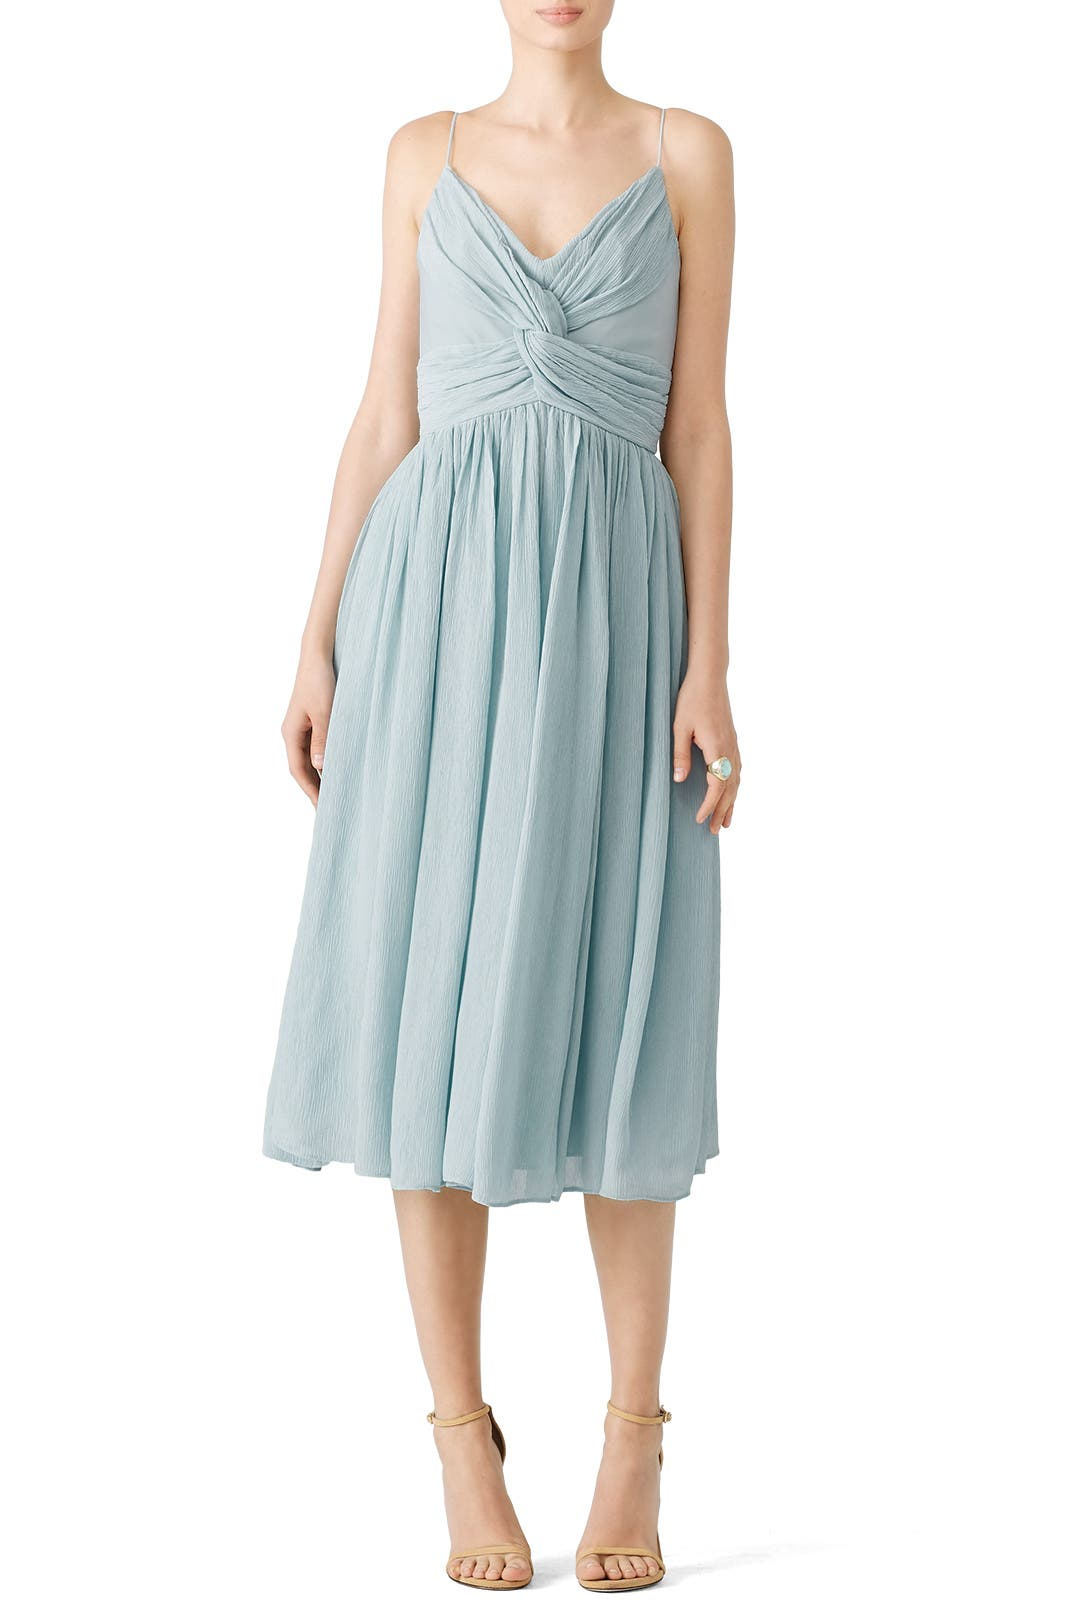 Blue Knotted Midi Dress by ADEAM for $230 | Rent the Runway